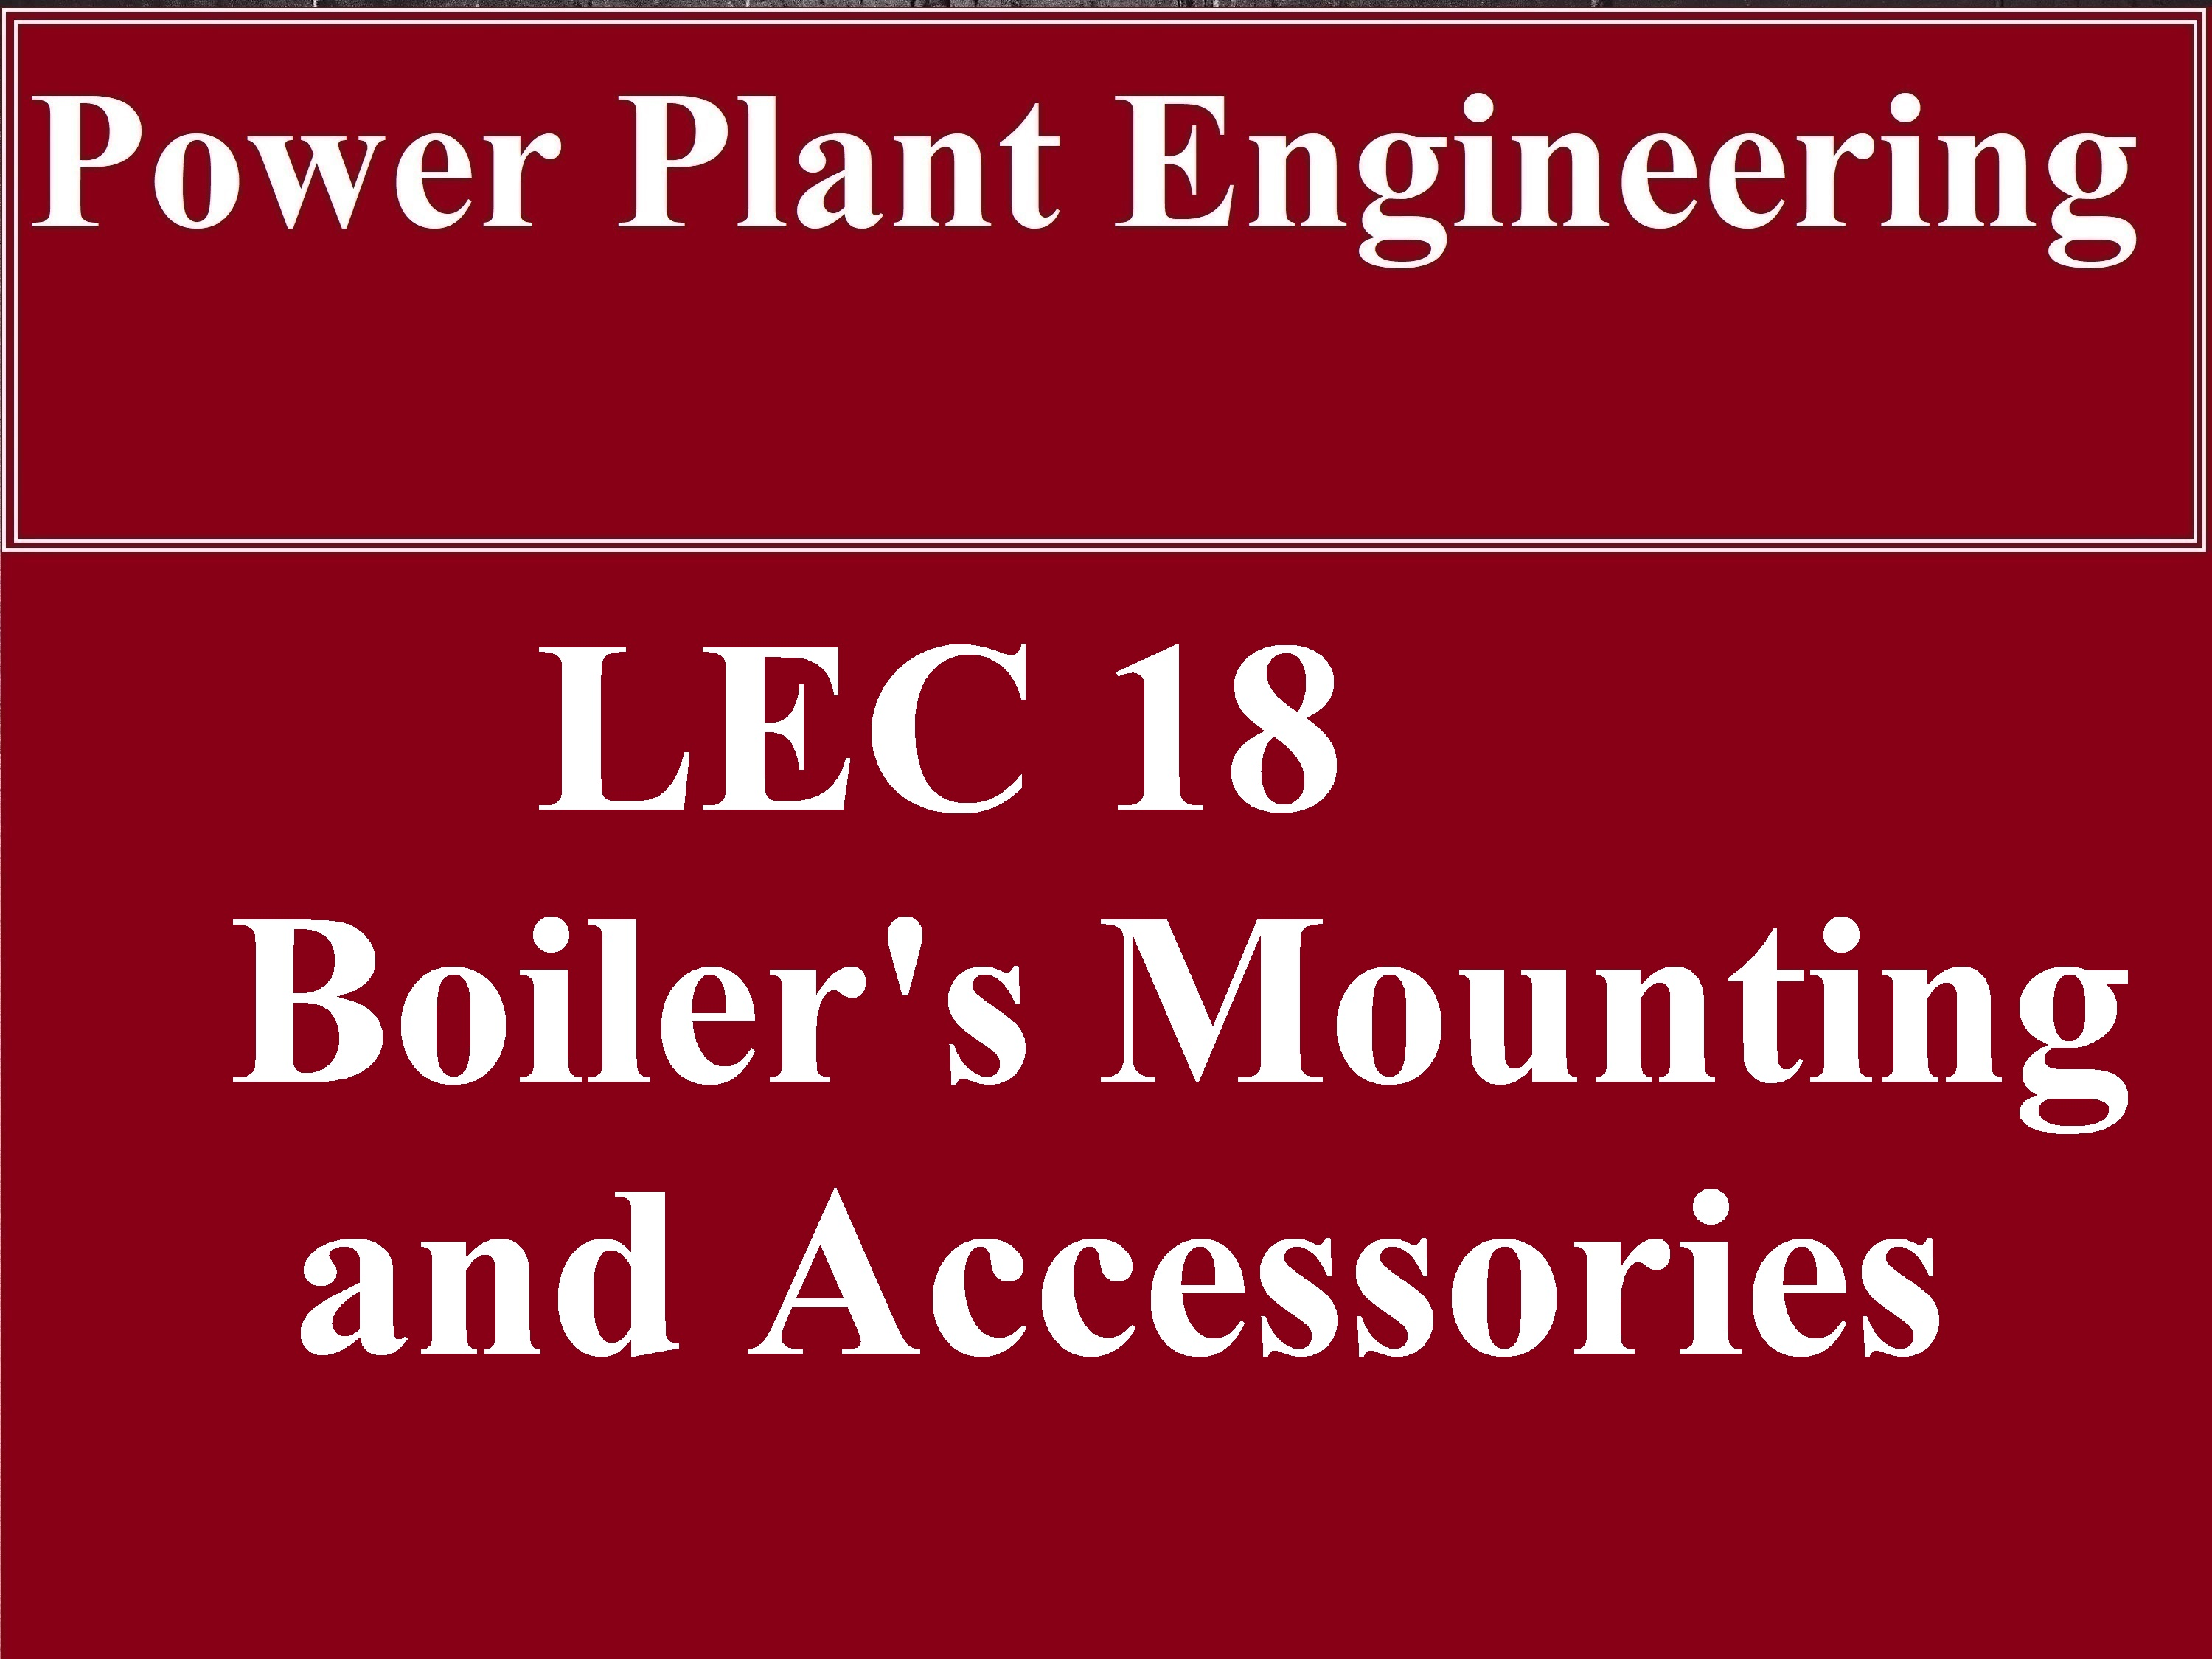 LEC 18 Boiler Mountings And Accessories